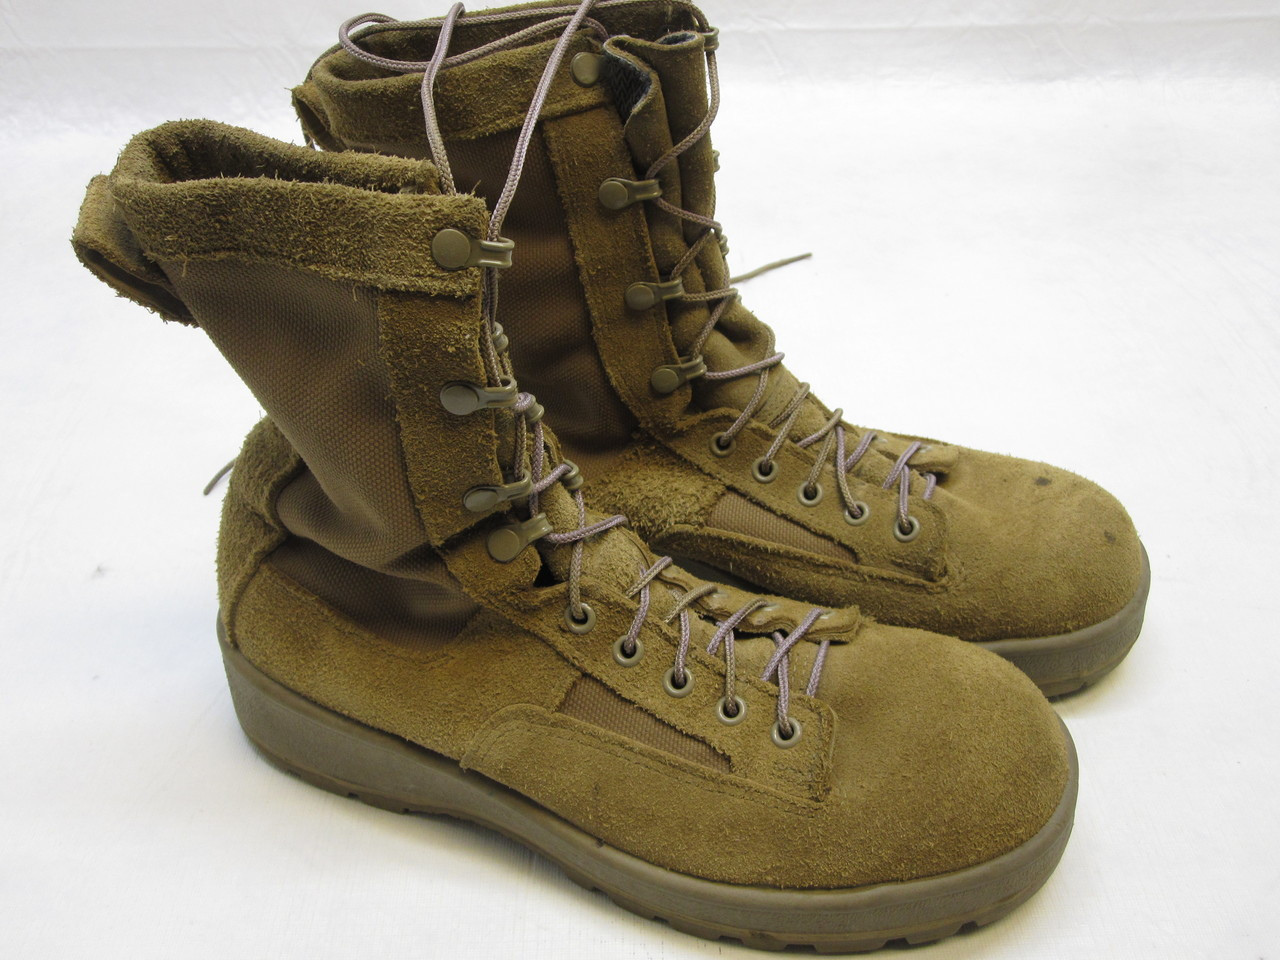 ALTAMA ARMY OCP GORE-TEX COLD WEATHER COMBAT BOOTS 8.5 W ATERPROOF